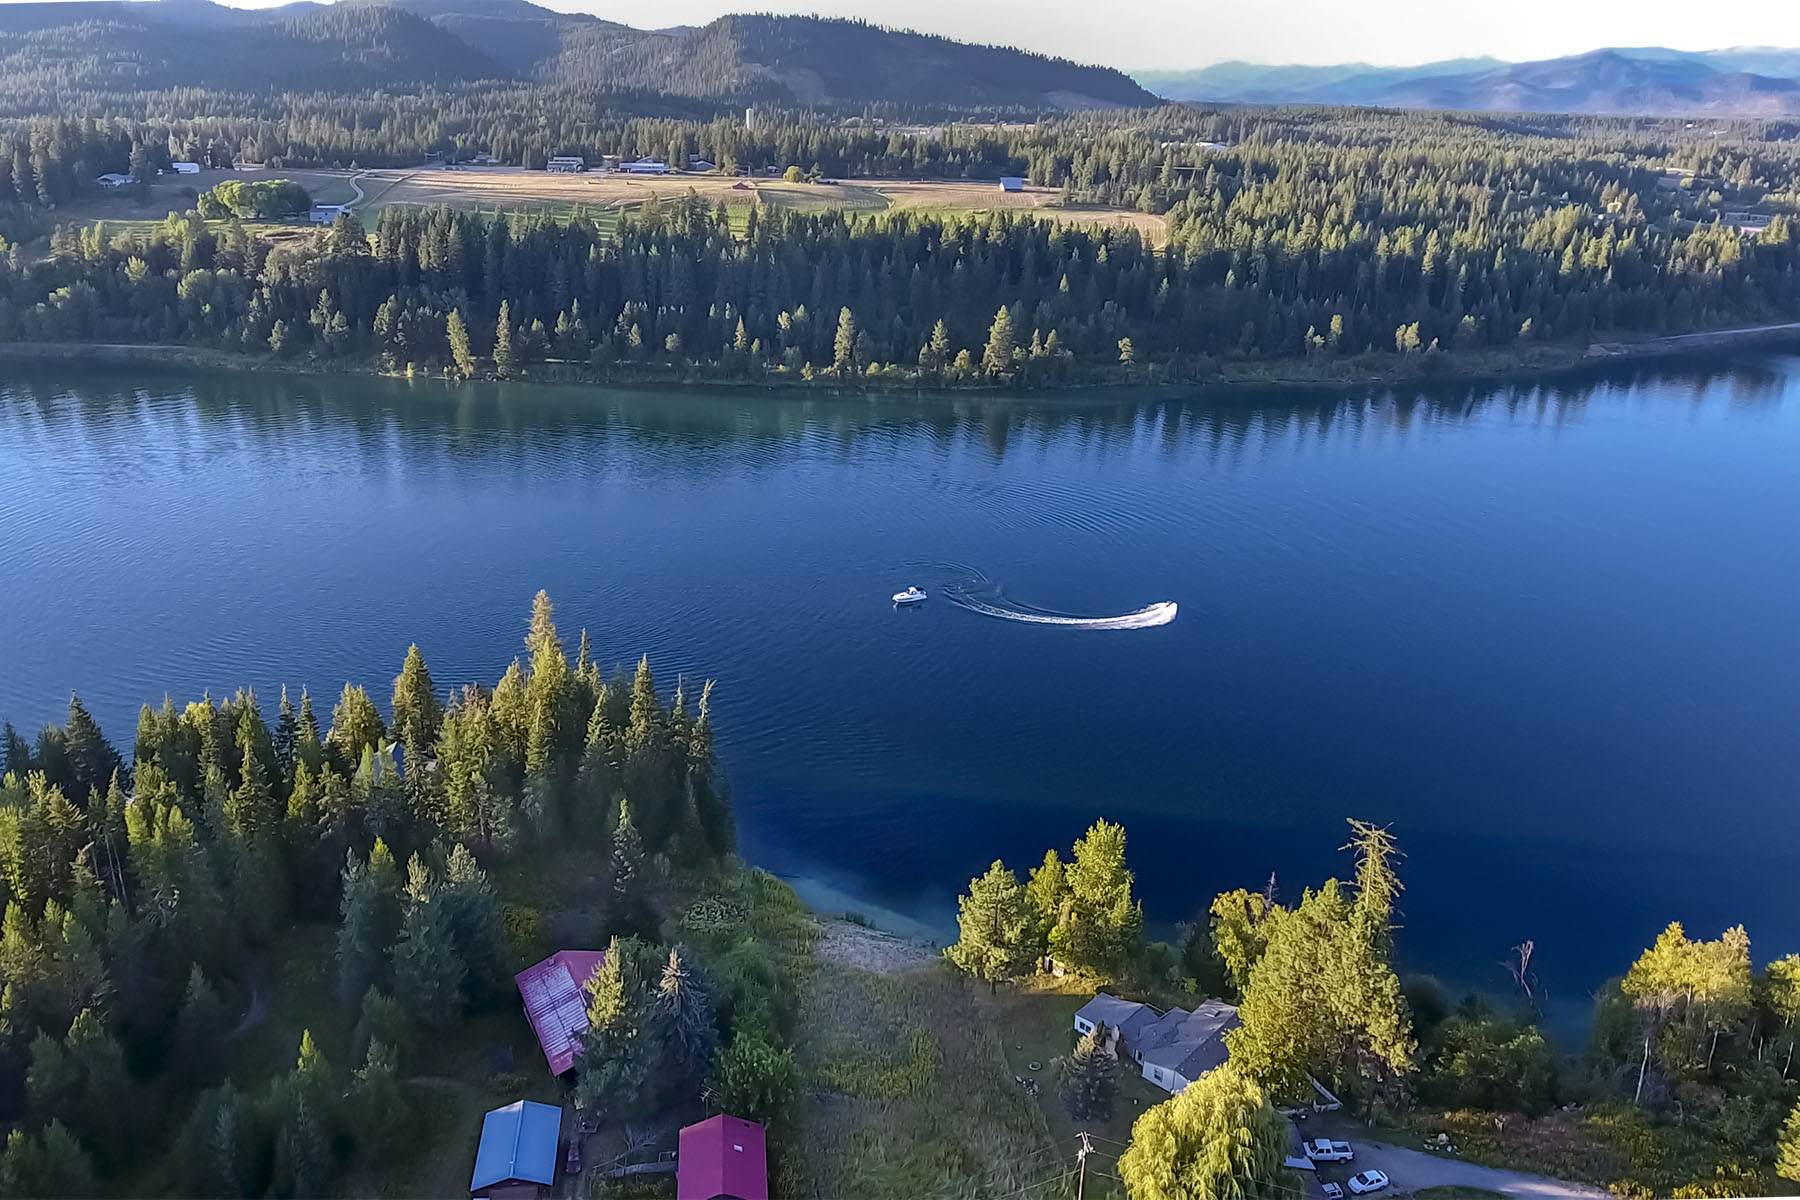 Terreno per Vendita alle ore Waterfront lot on the Pend Oreille River NNA-Lot 19 Riverside Rd Priest River, Idaho, 83856 Stati Uniti